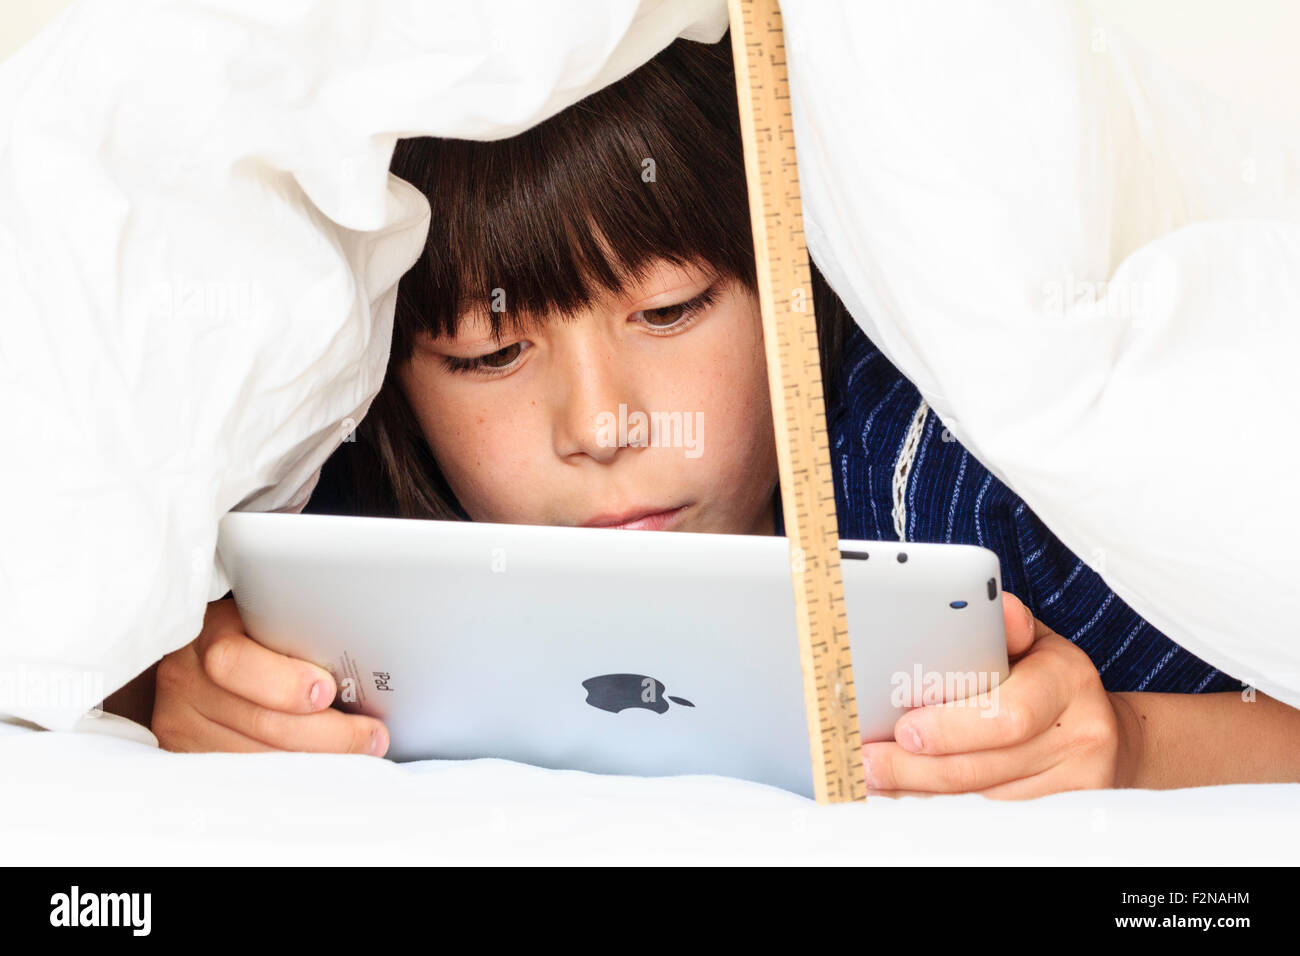 Caucasian male 11 year old child, laying under duvet on bed, looking at i-pad, concentrating studying. Kazki - Stock Image